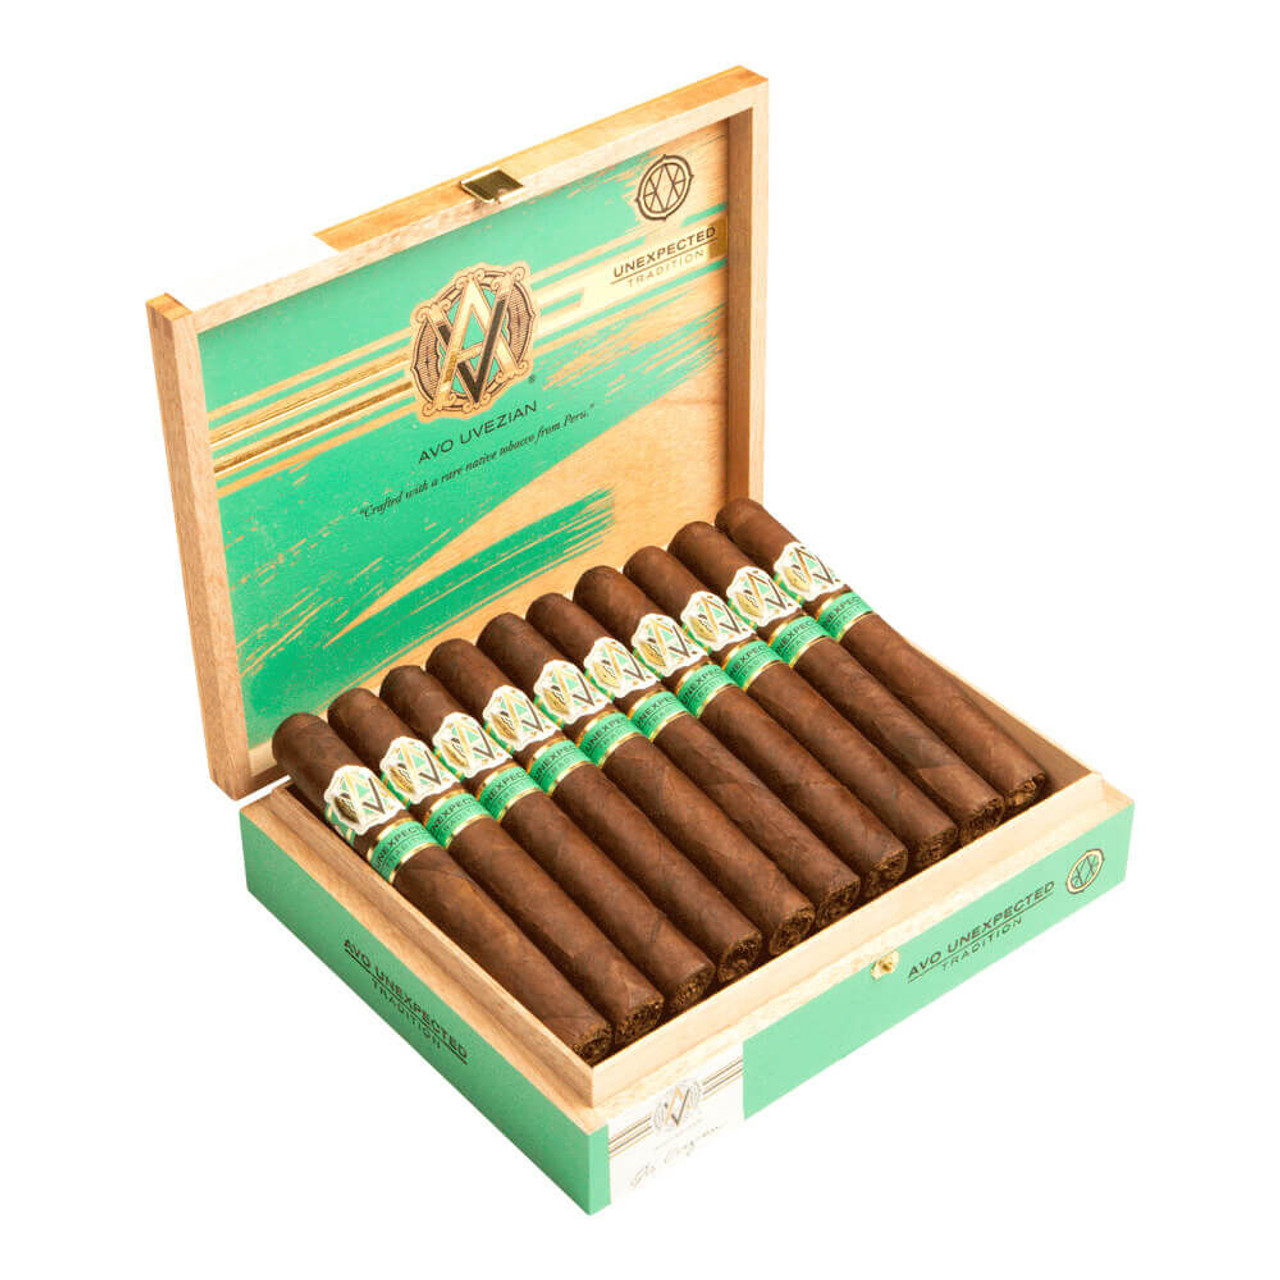 AVO Unexpected Series Tradition Cigars - 6.0 x 50 (Box of 20)